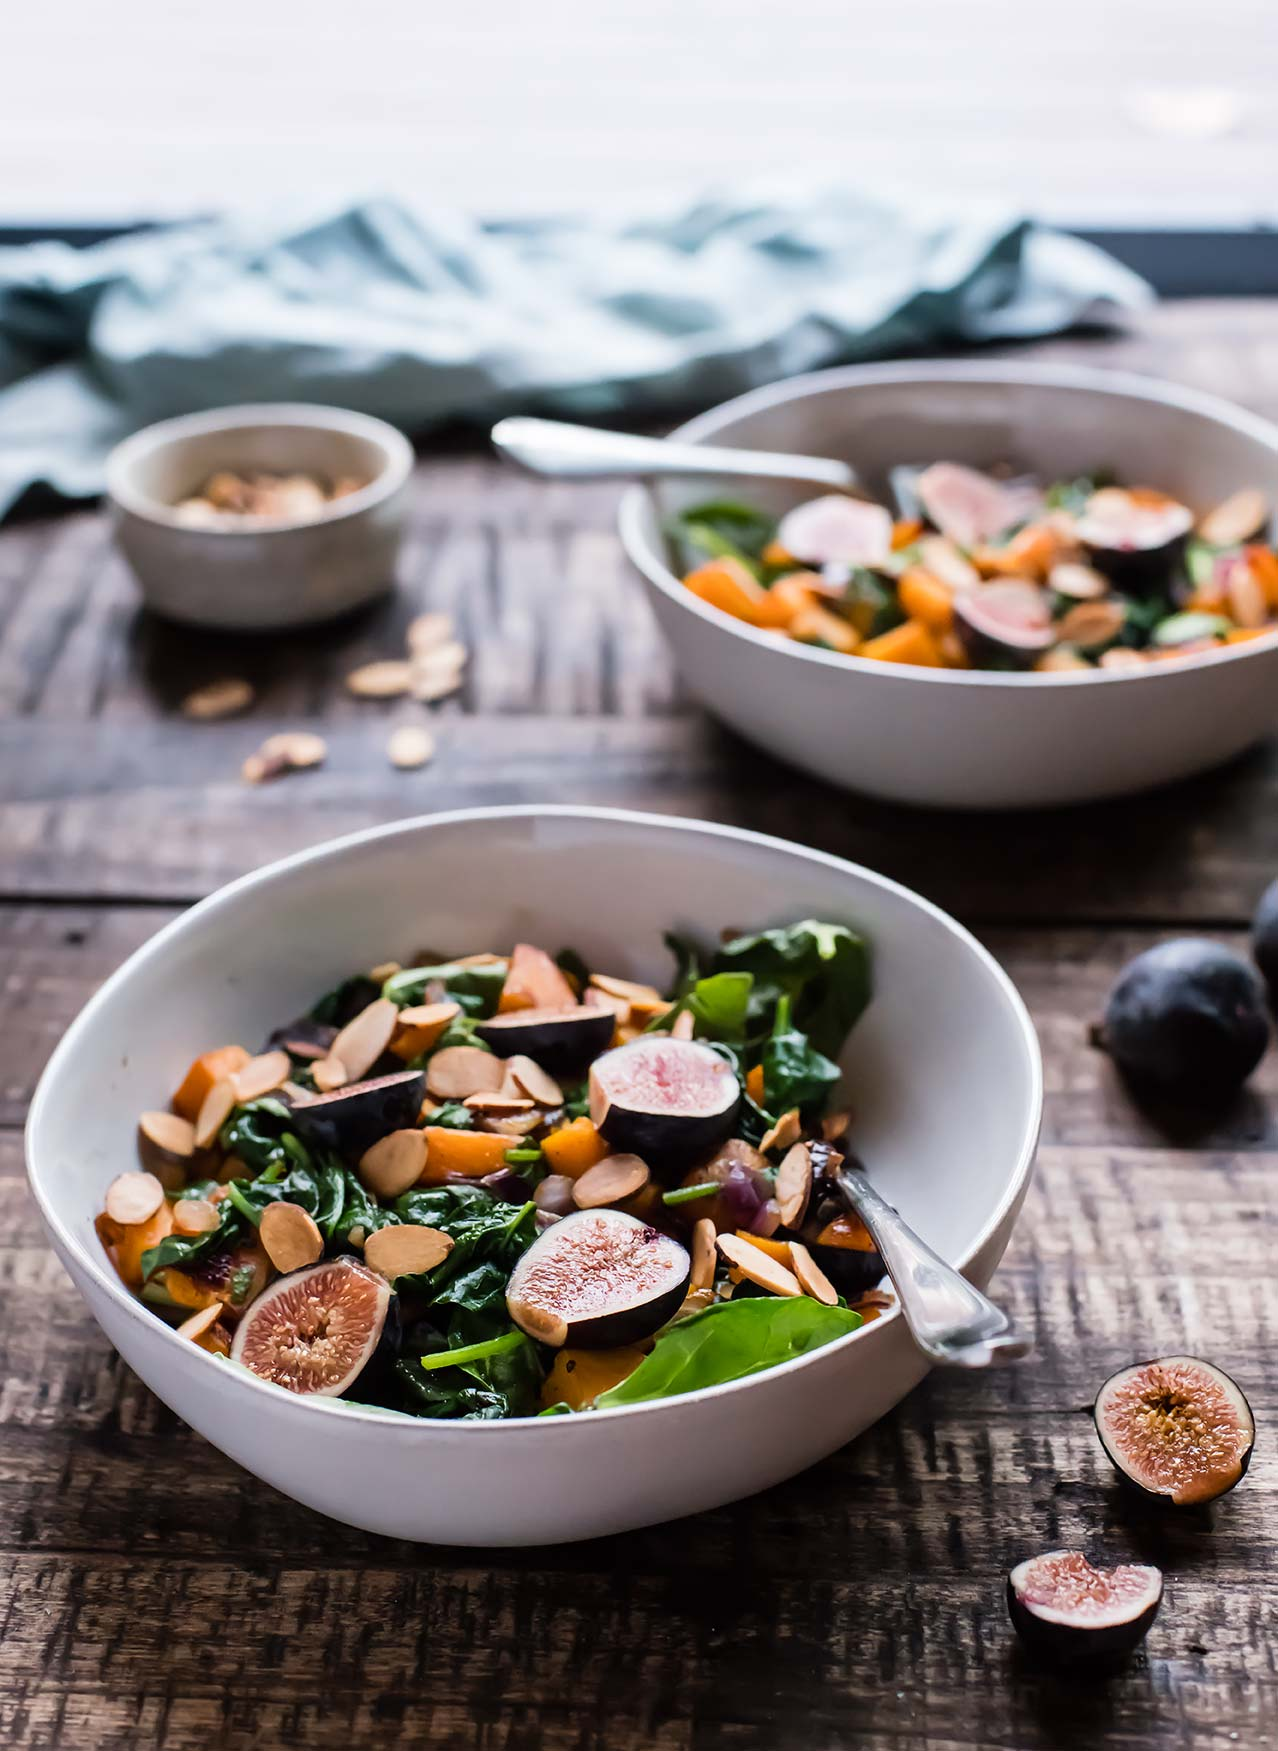 Warm Spinach Salad with Figs and Roasted Butternut Squash